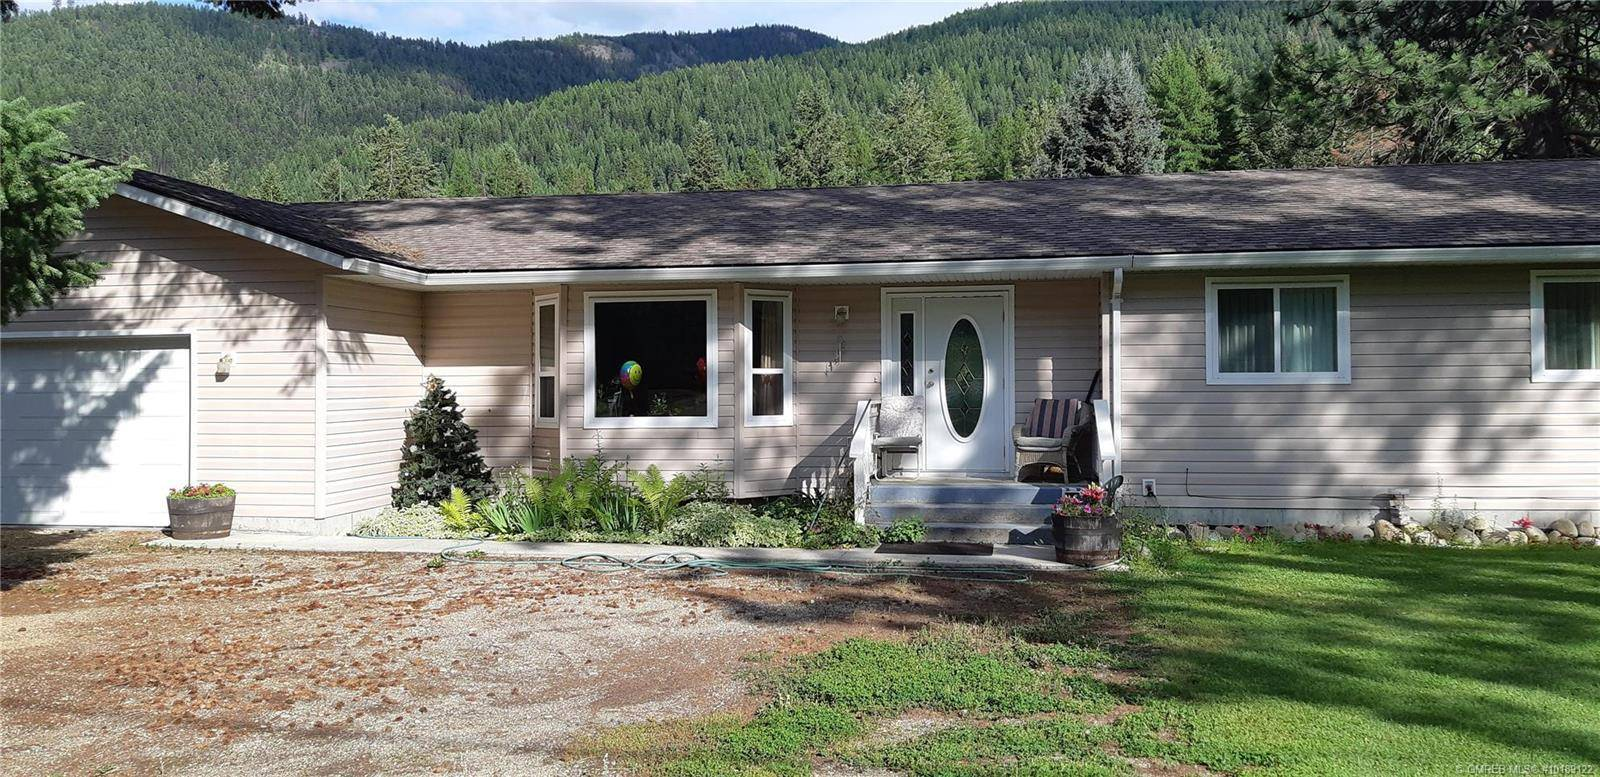 House for sale at 5983 Highway 33 Hy Unit 33 Beaverdell British Columbia - MLS: 10189122